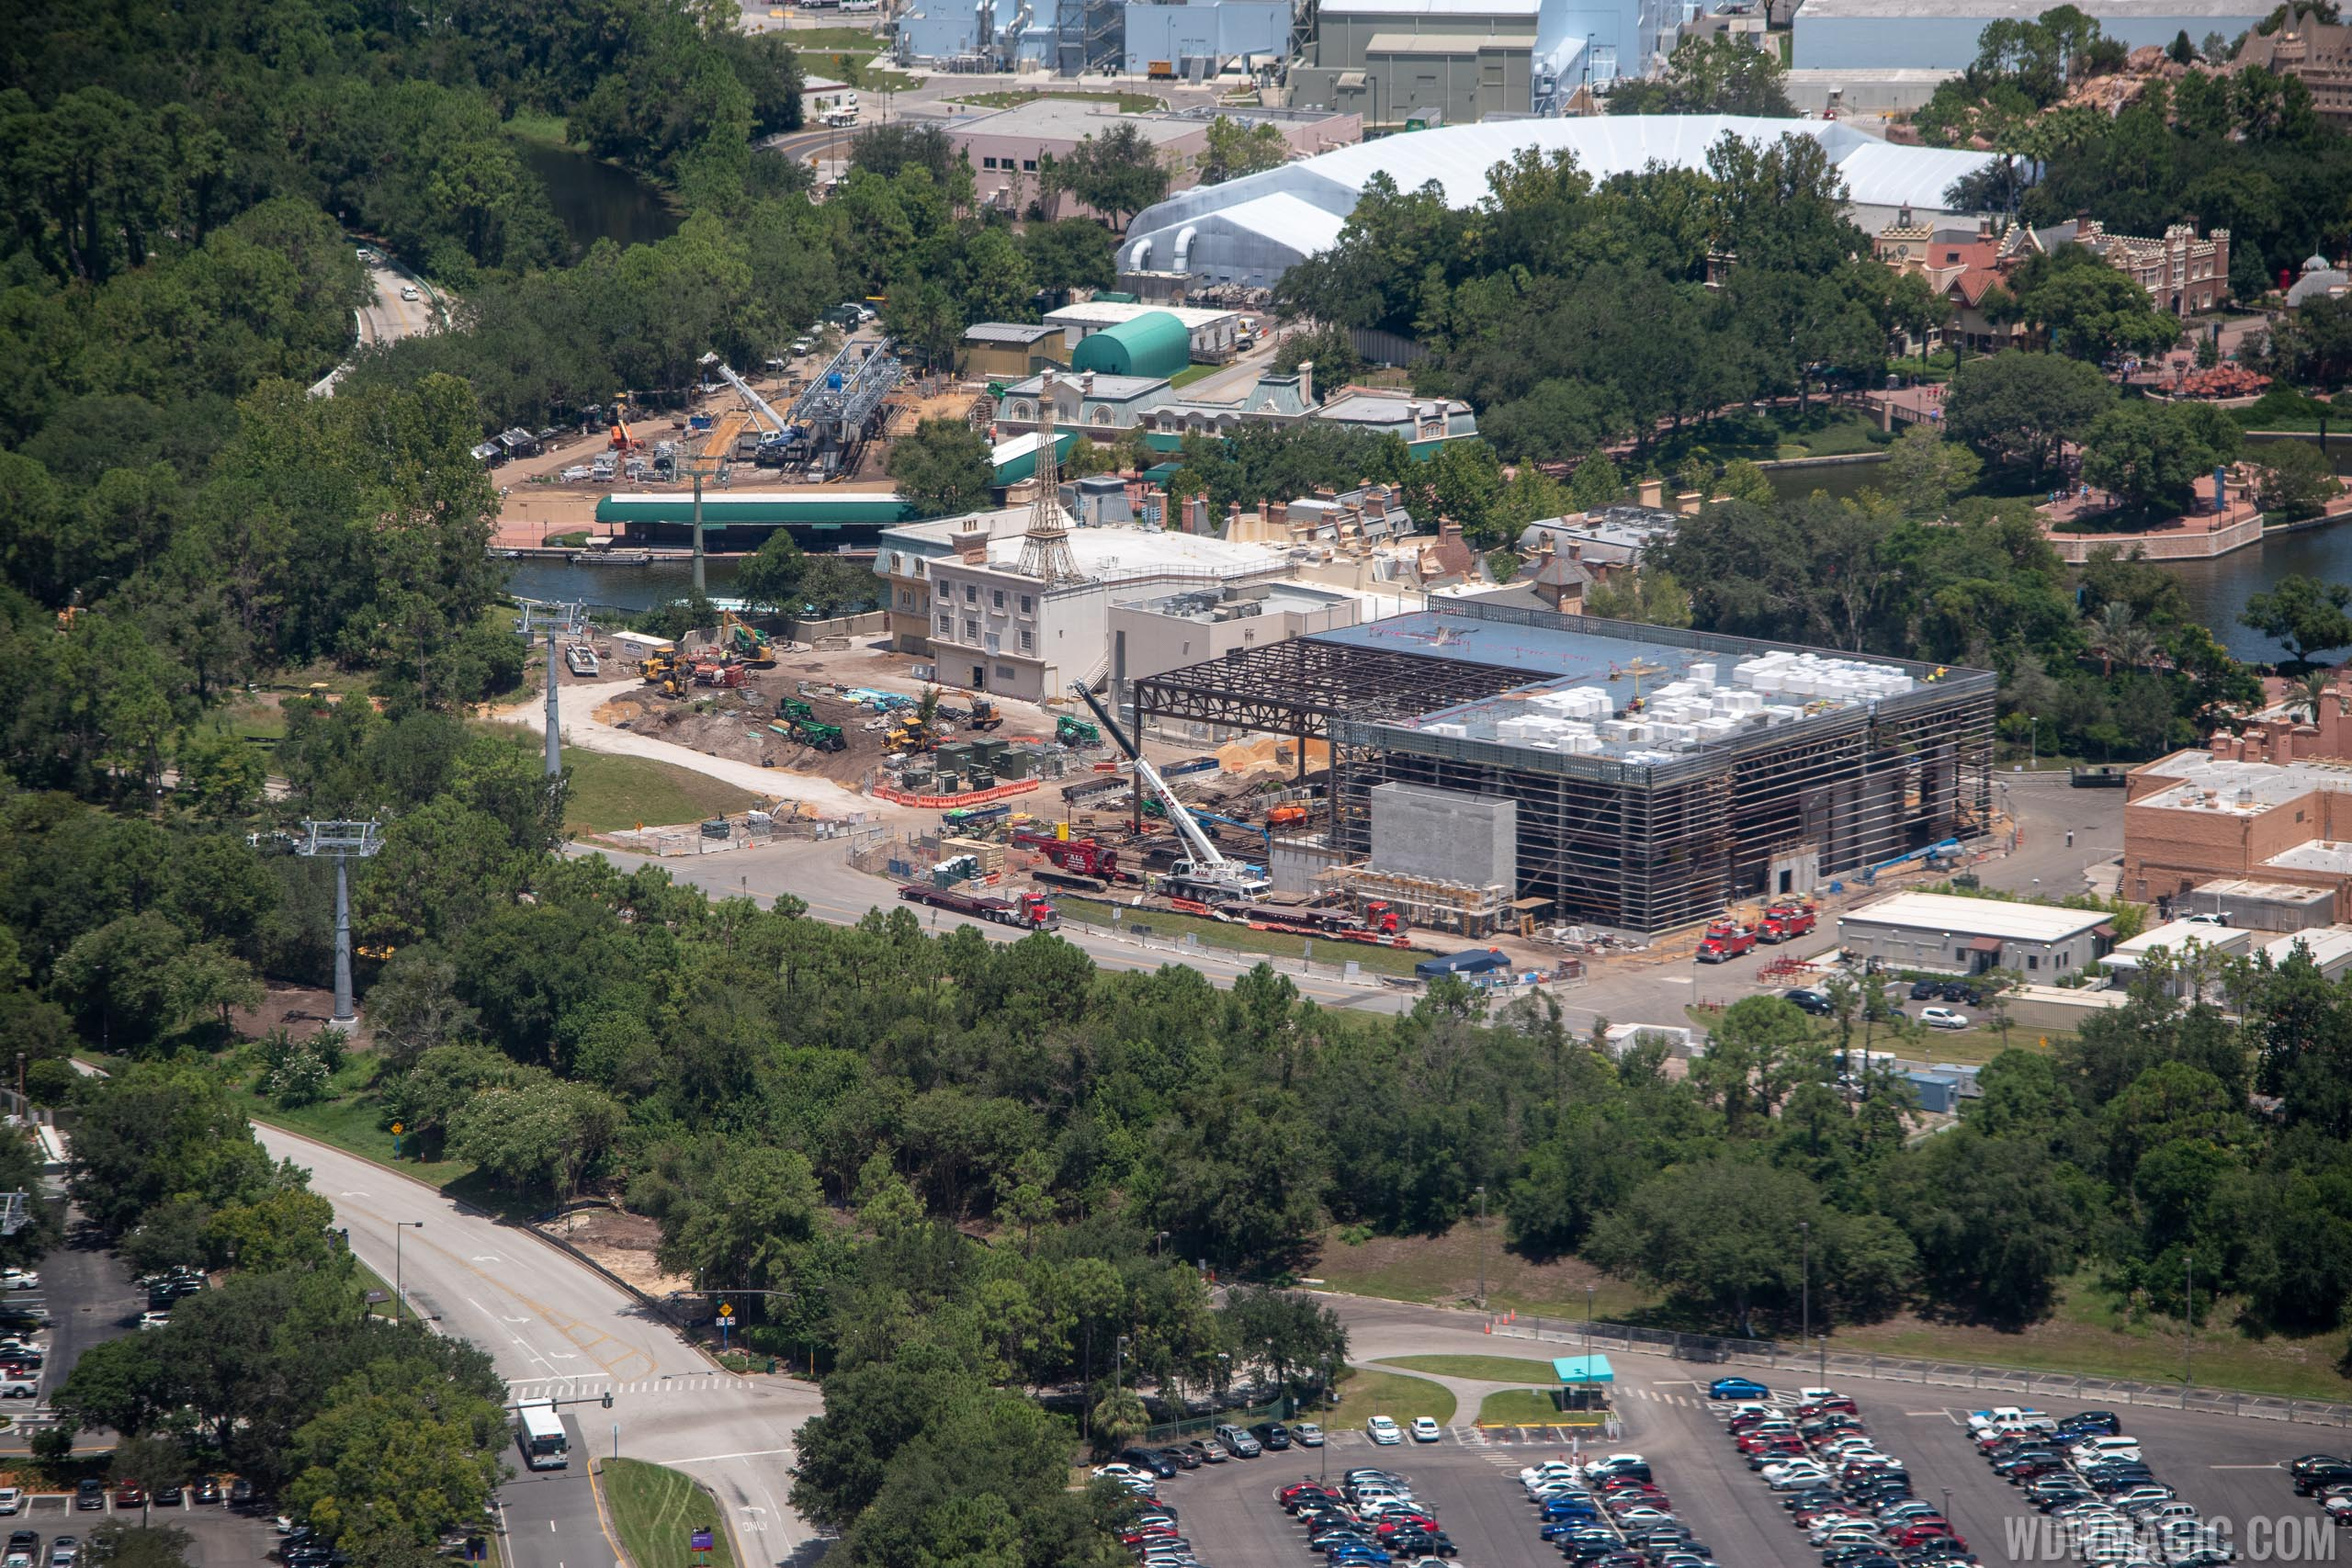 Ratatouille aerial construction pictures - August 2018